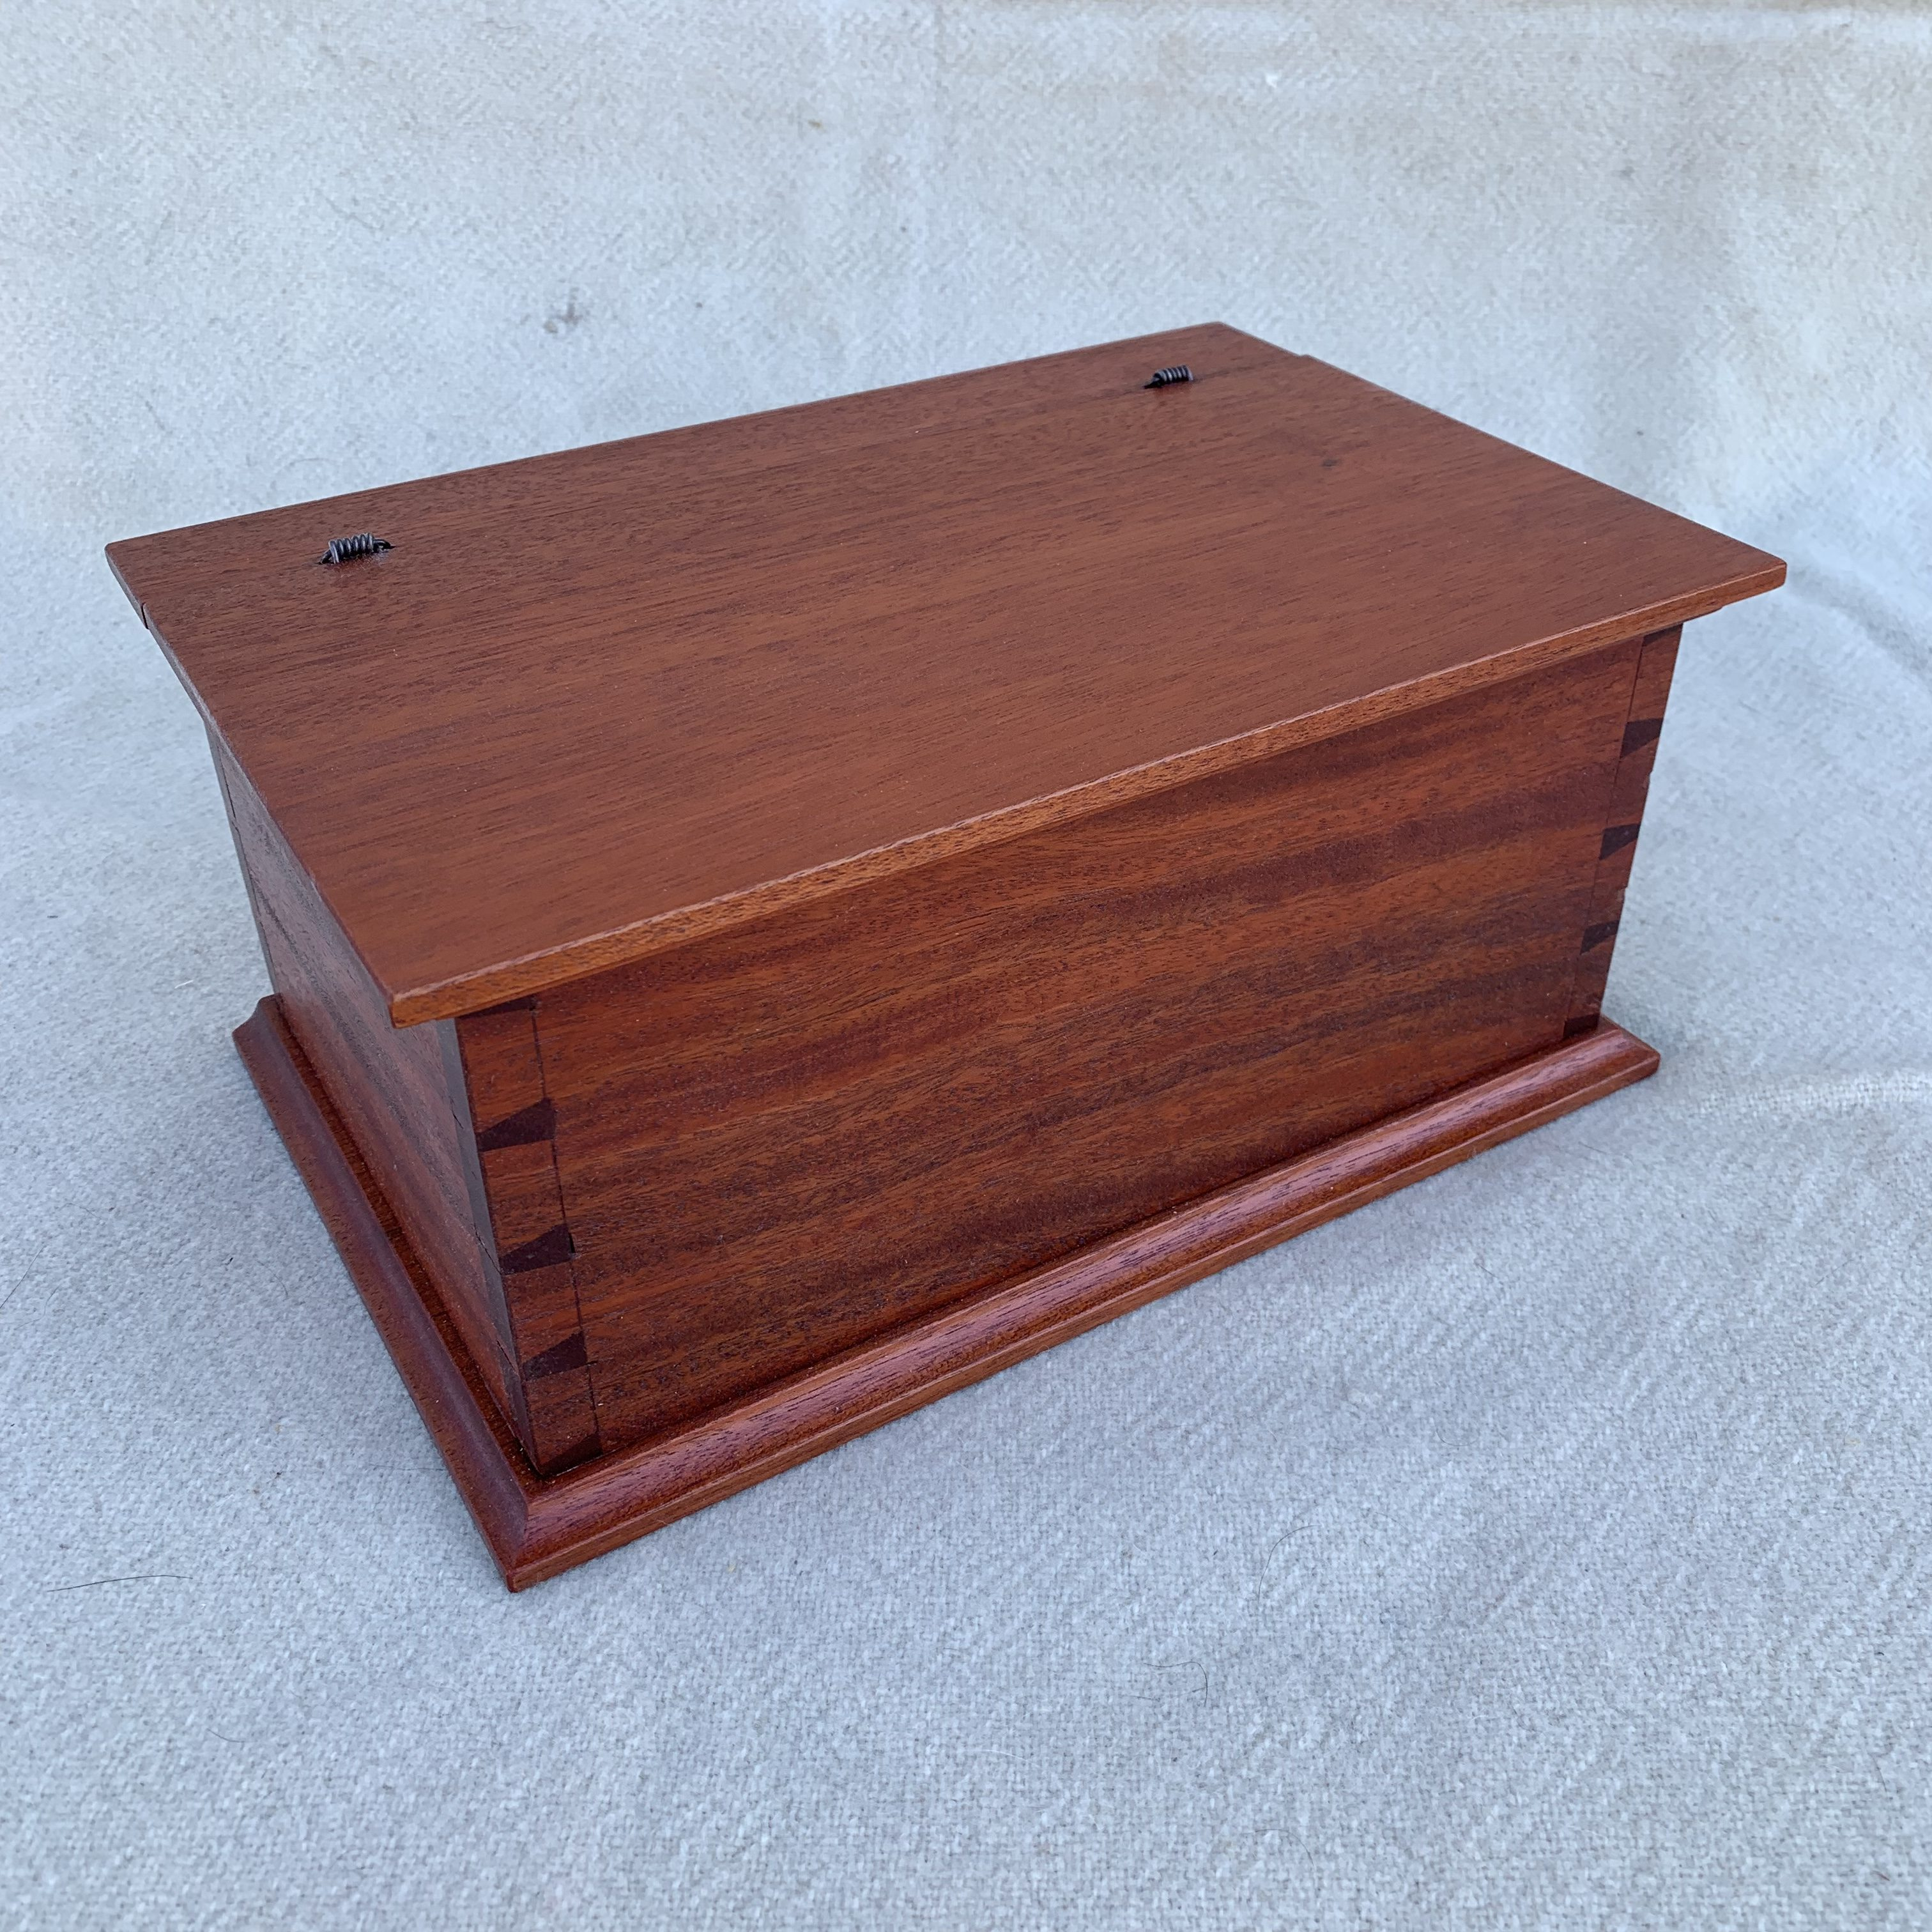 Mahogany table box